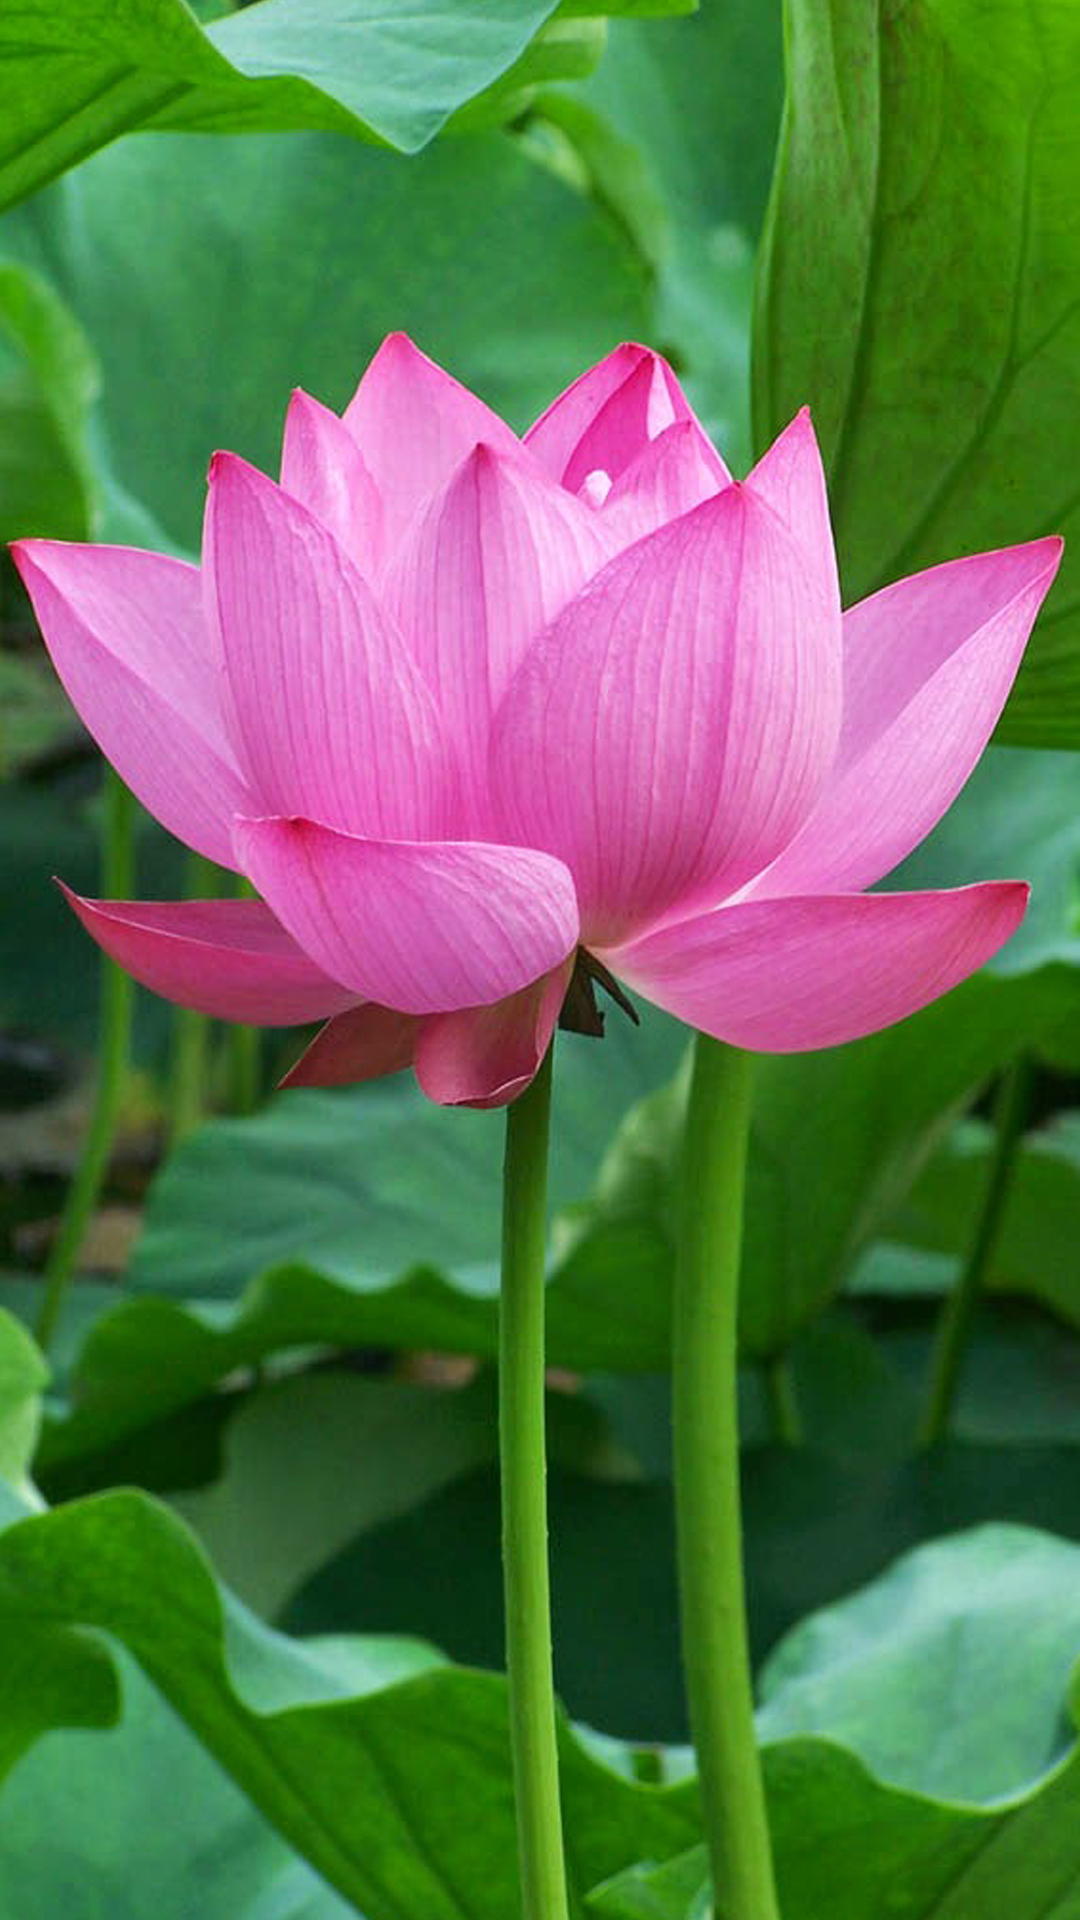 Beautiful Lotus Flower High Resolution Wallpaper Hd Wallpapers